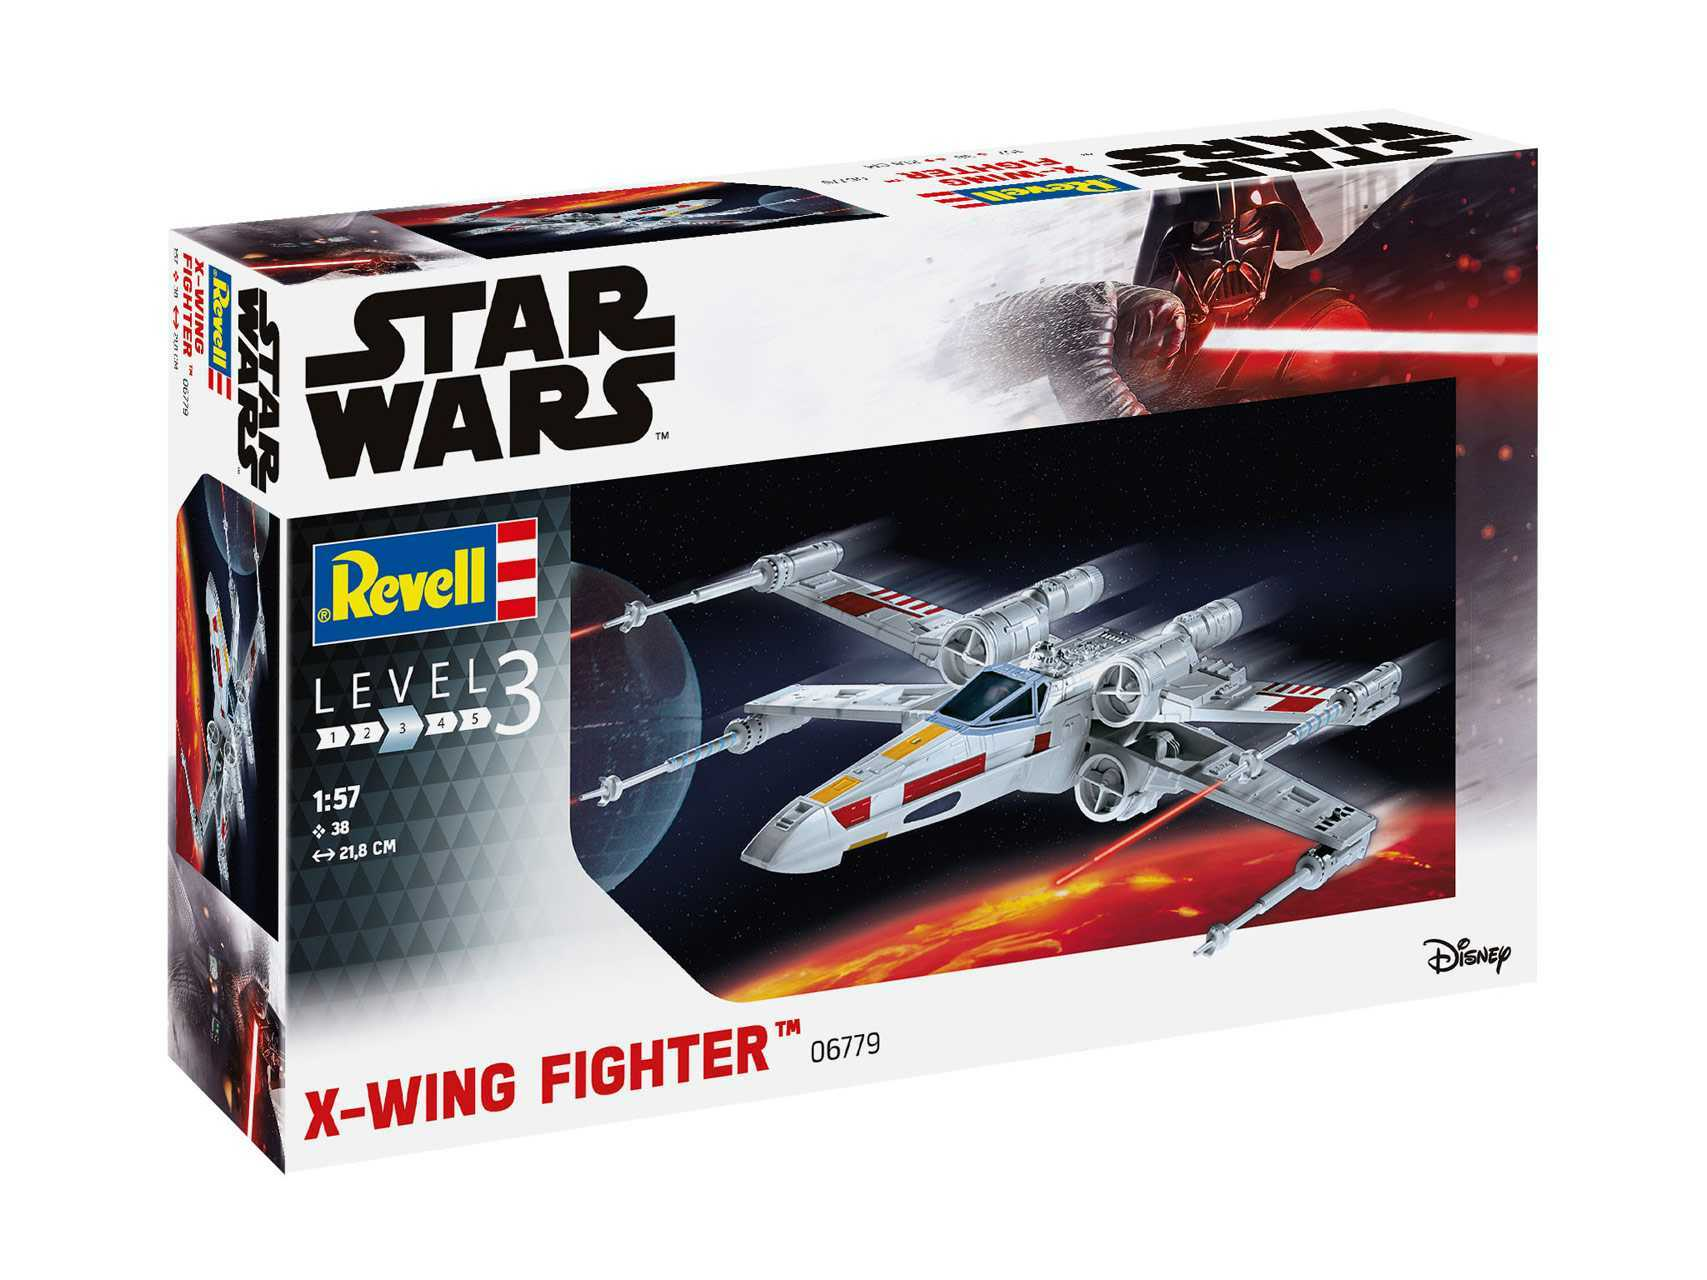 1:57 X-Wing Fighter (Model Set)